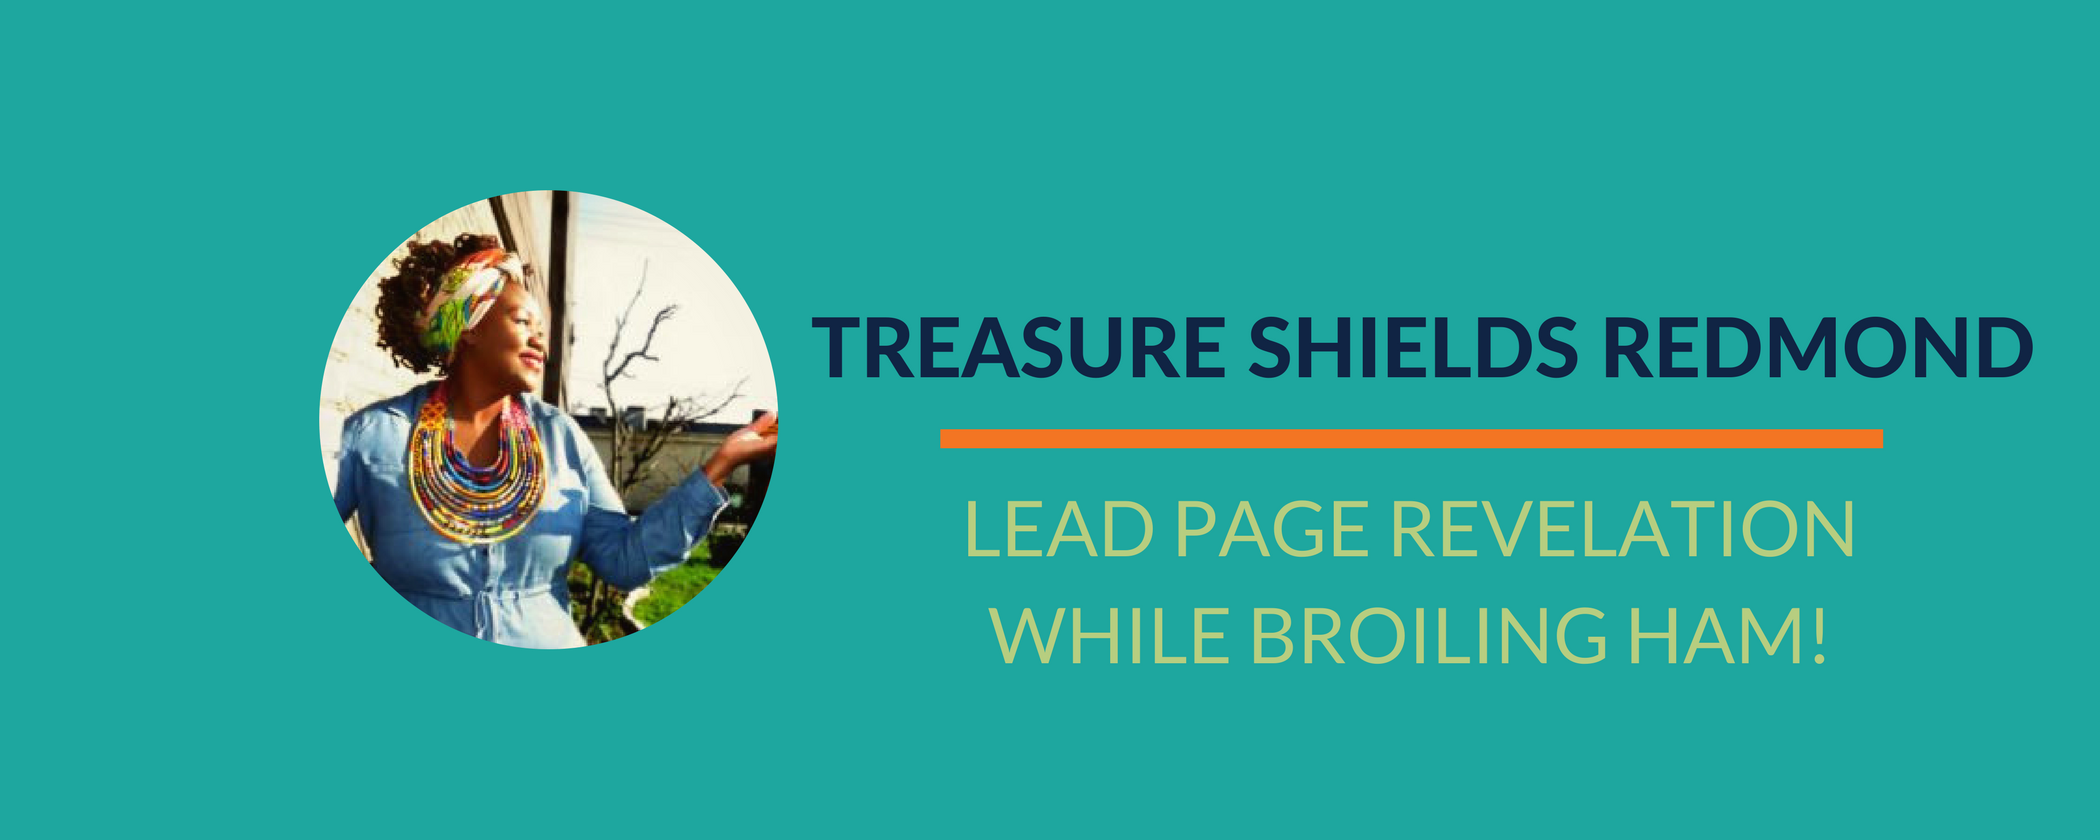 Success Story: Treasure's lead page revelation while broiling ham!